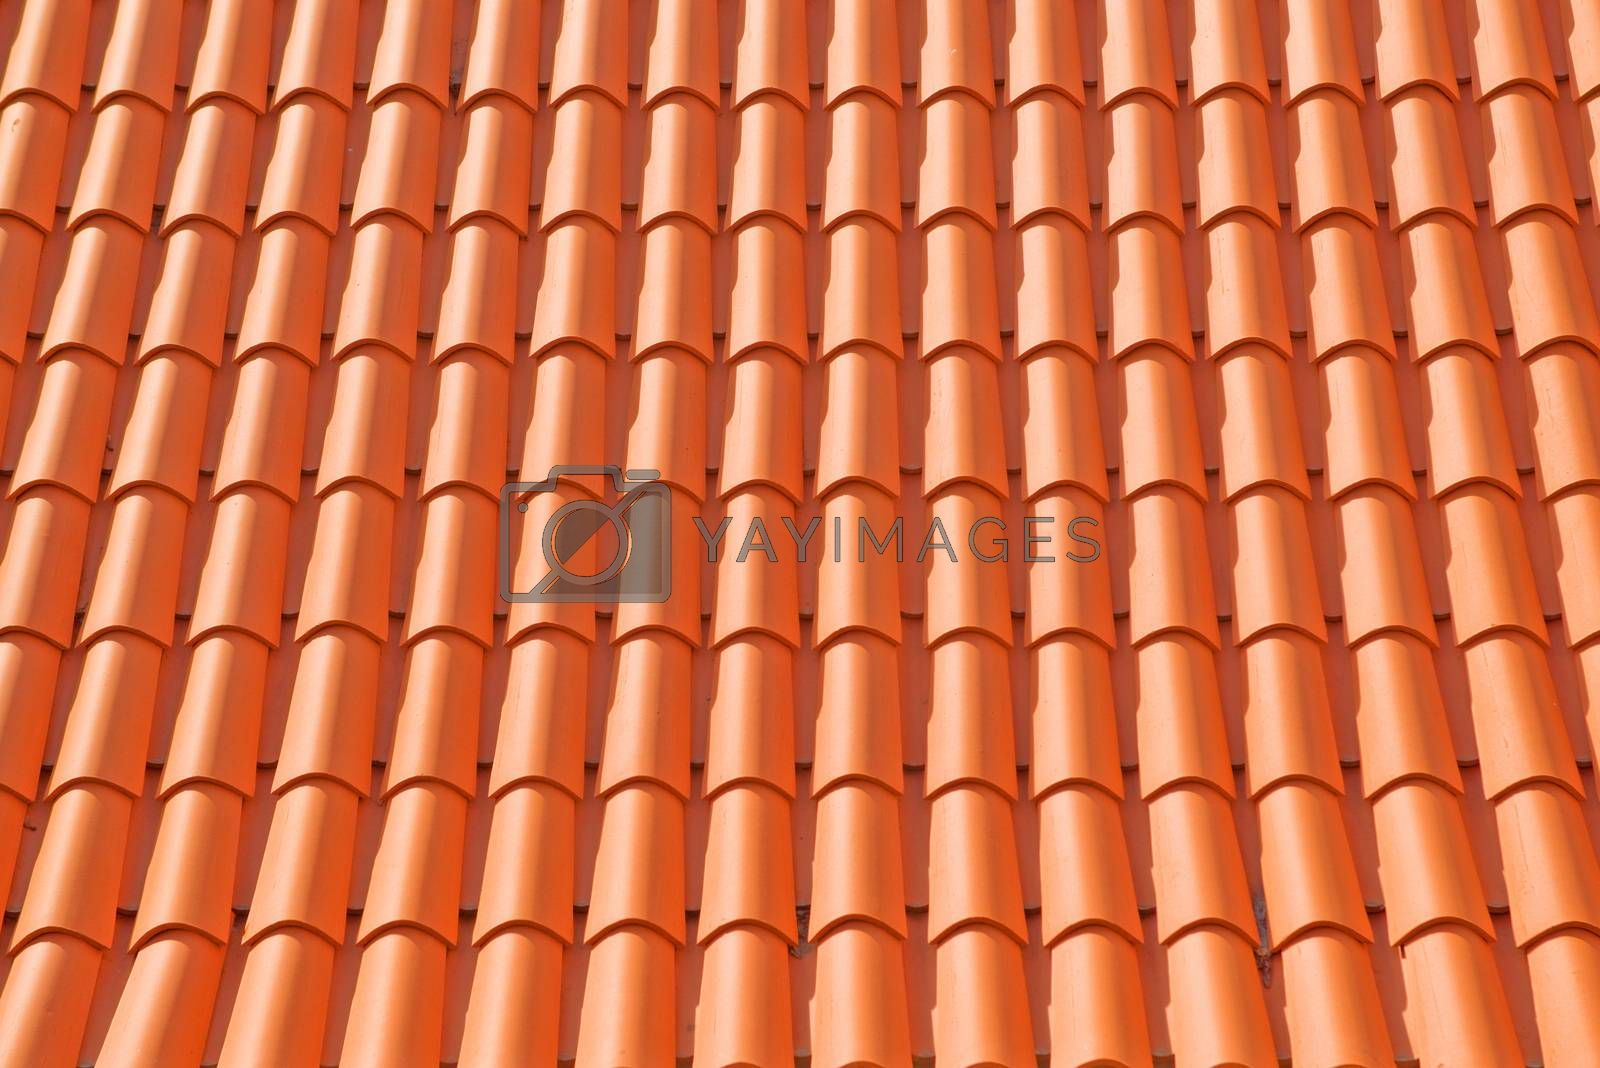 Roof texture tile. Abstract background tile of orange clay roof.